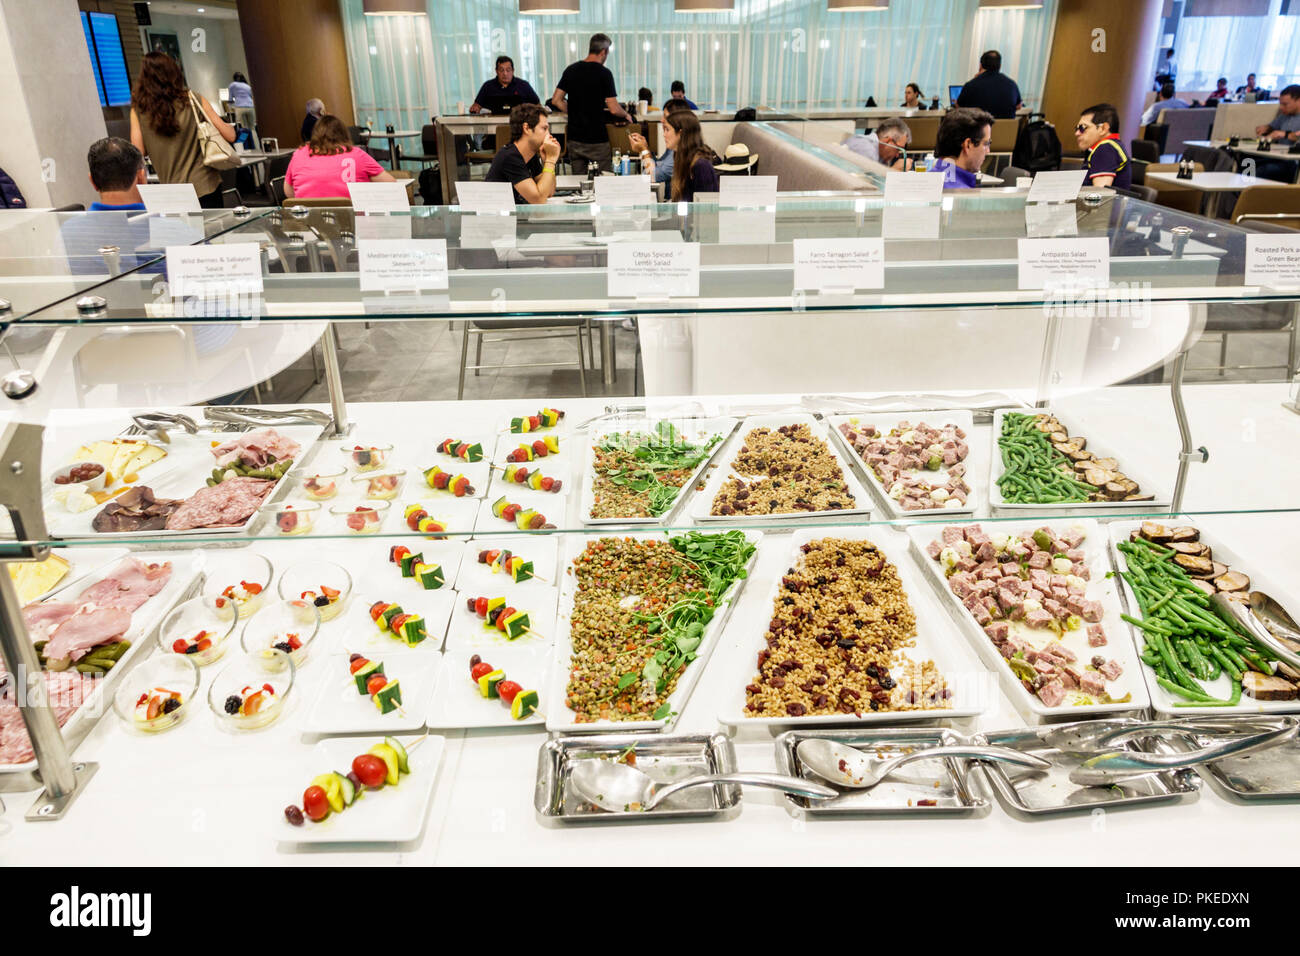 Miami Florida International Airport MIA Terminal Concourse Gate Area American Airlines Business Class Flagship Lounge Dining Room Food Trays Buffet